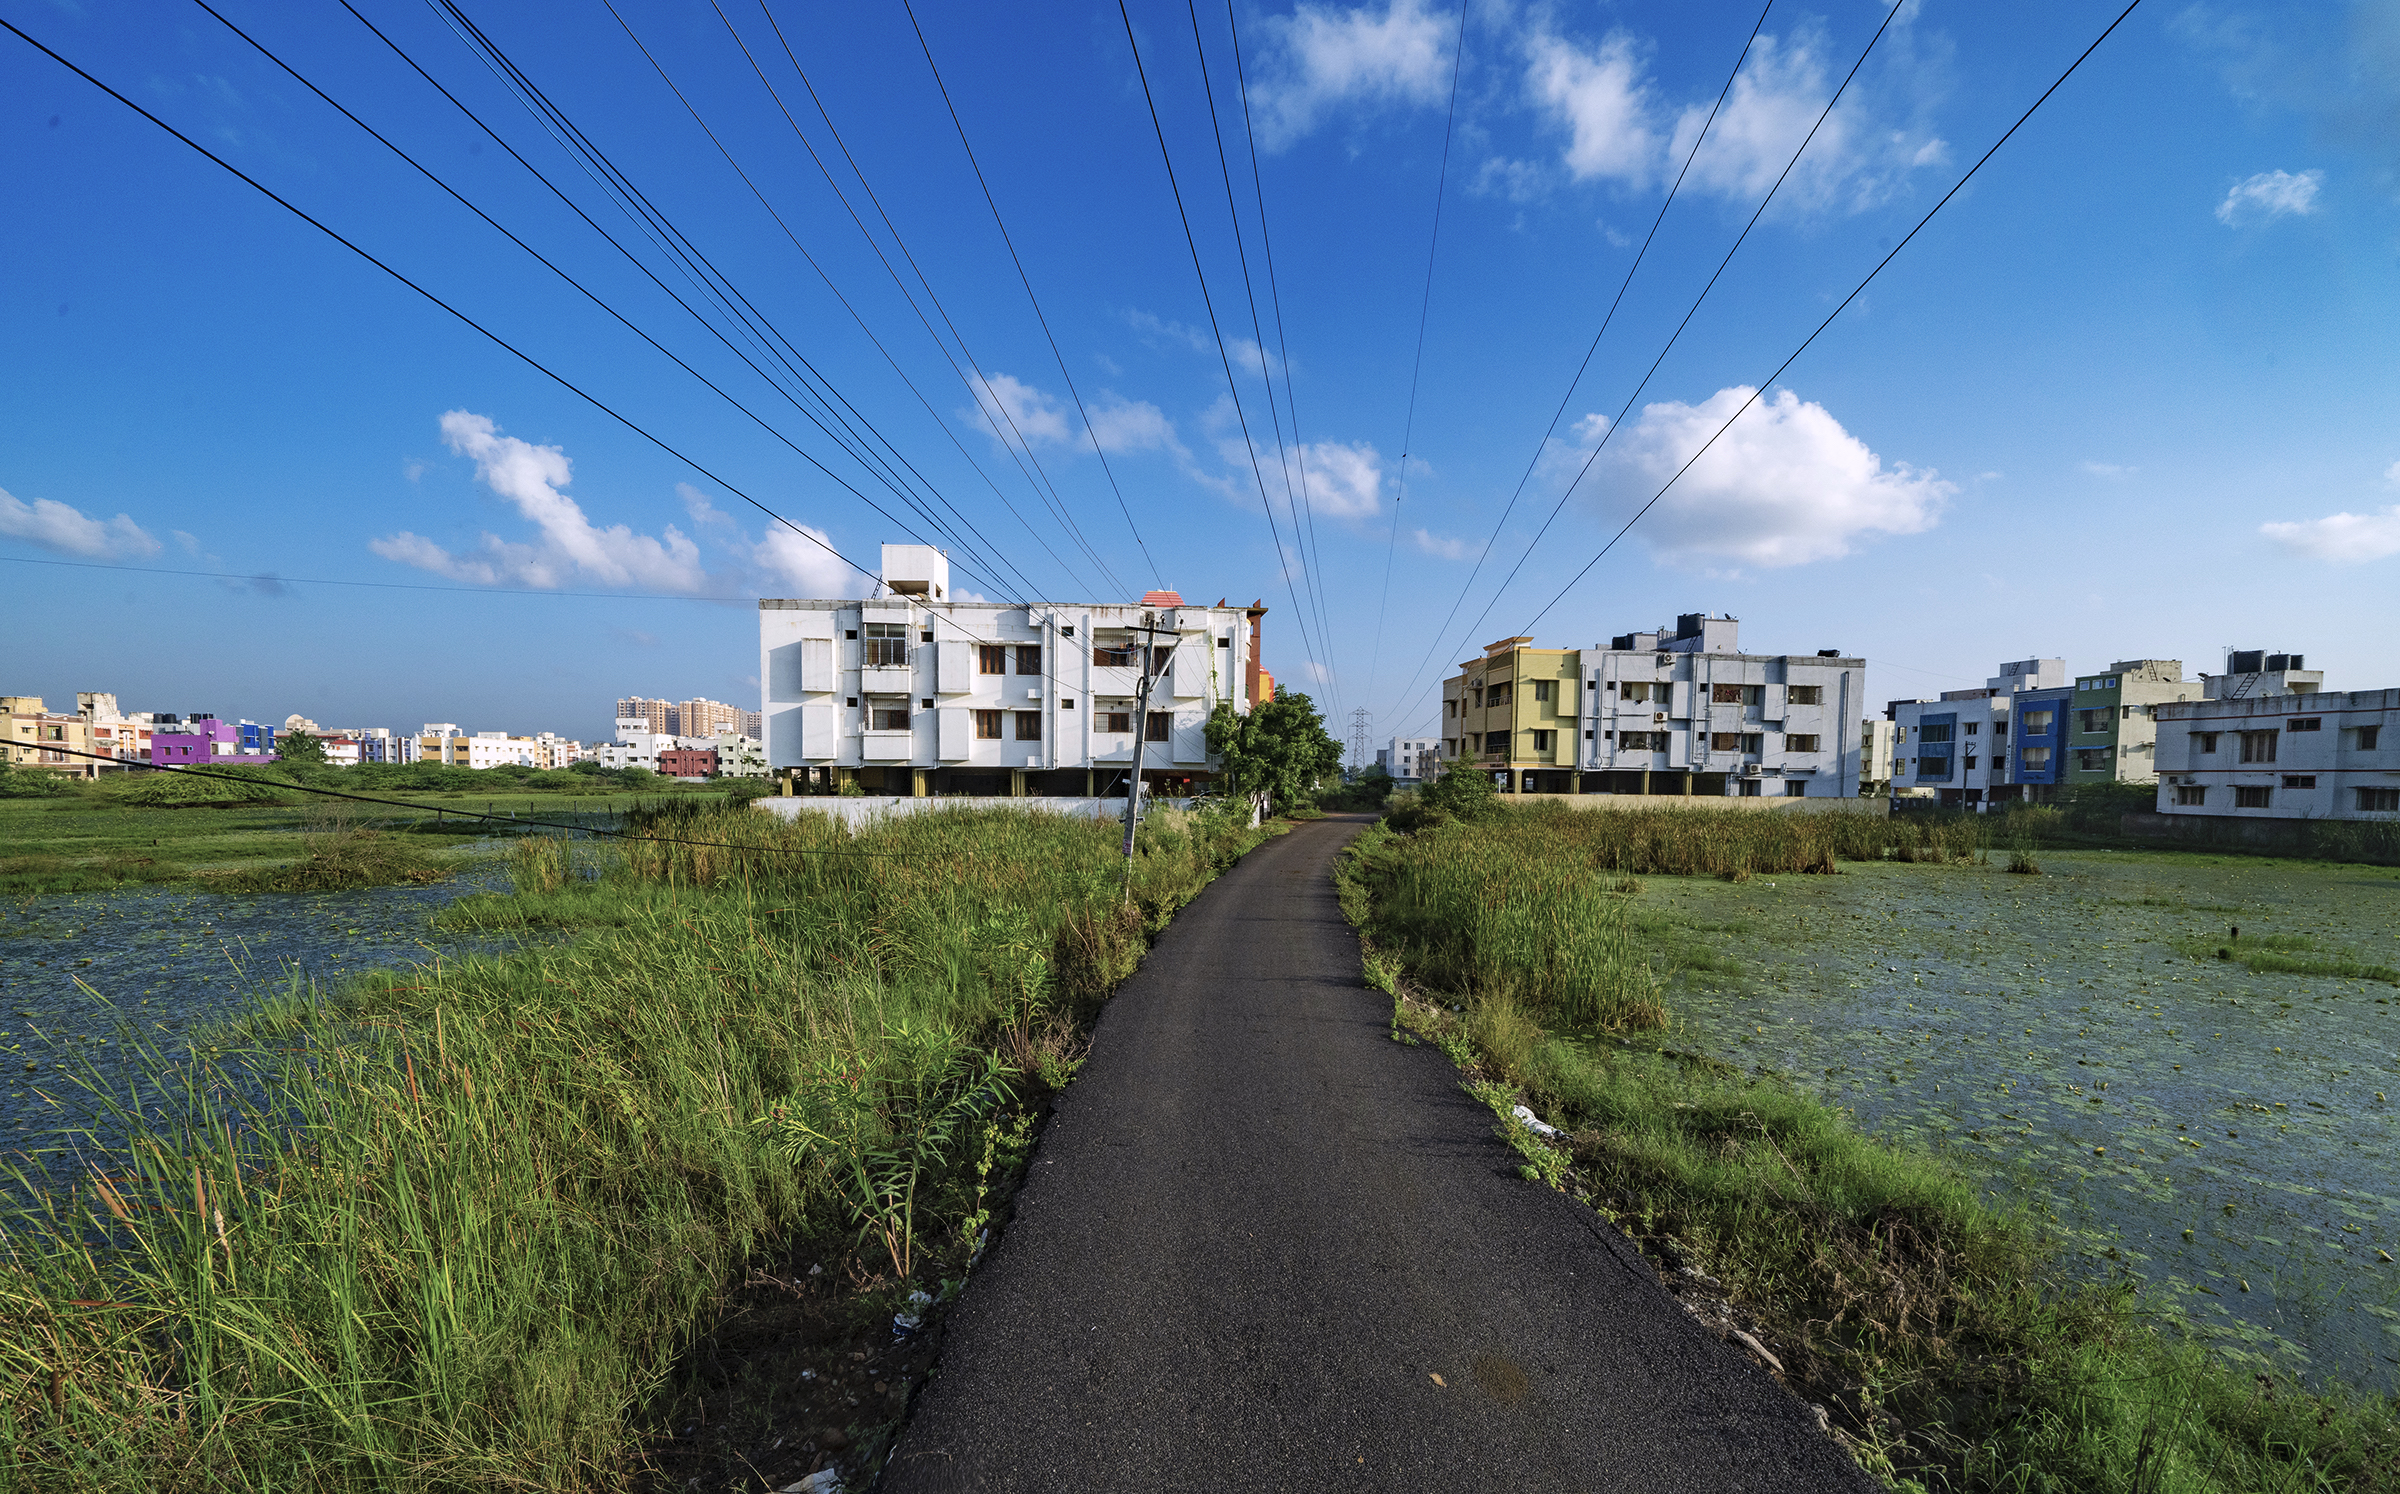 Rampant development has decimated marshlands around Chennai, impacting the city's ability to control floods, store water, and protect native biodiversity.